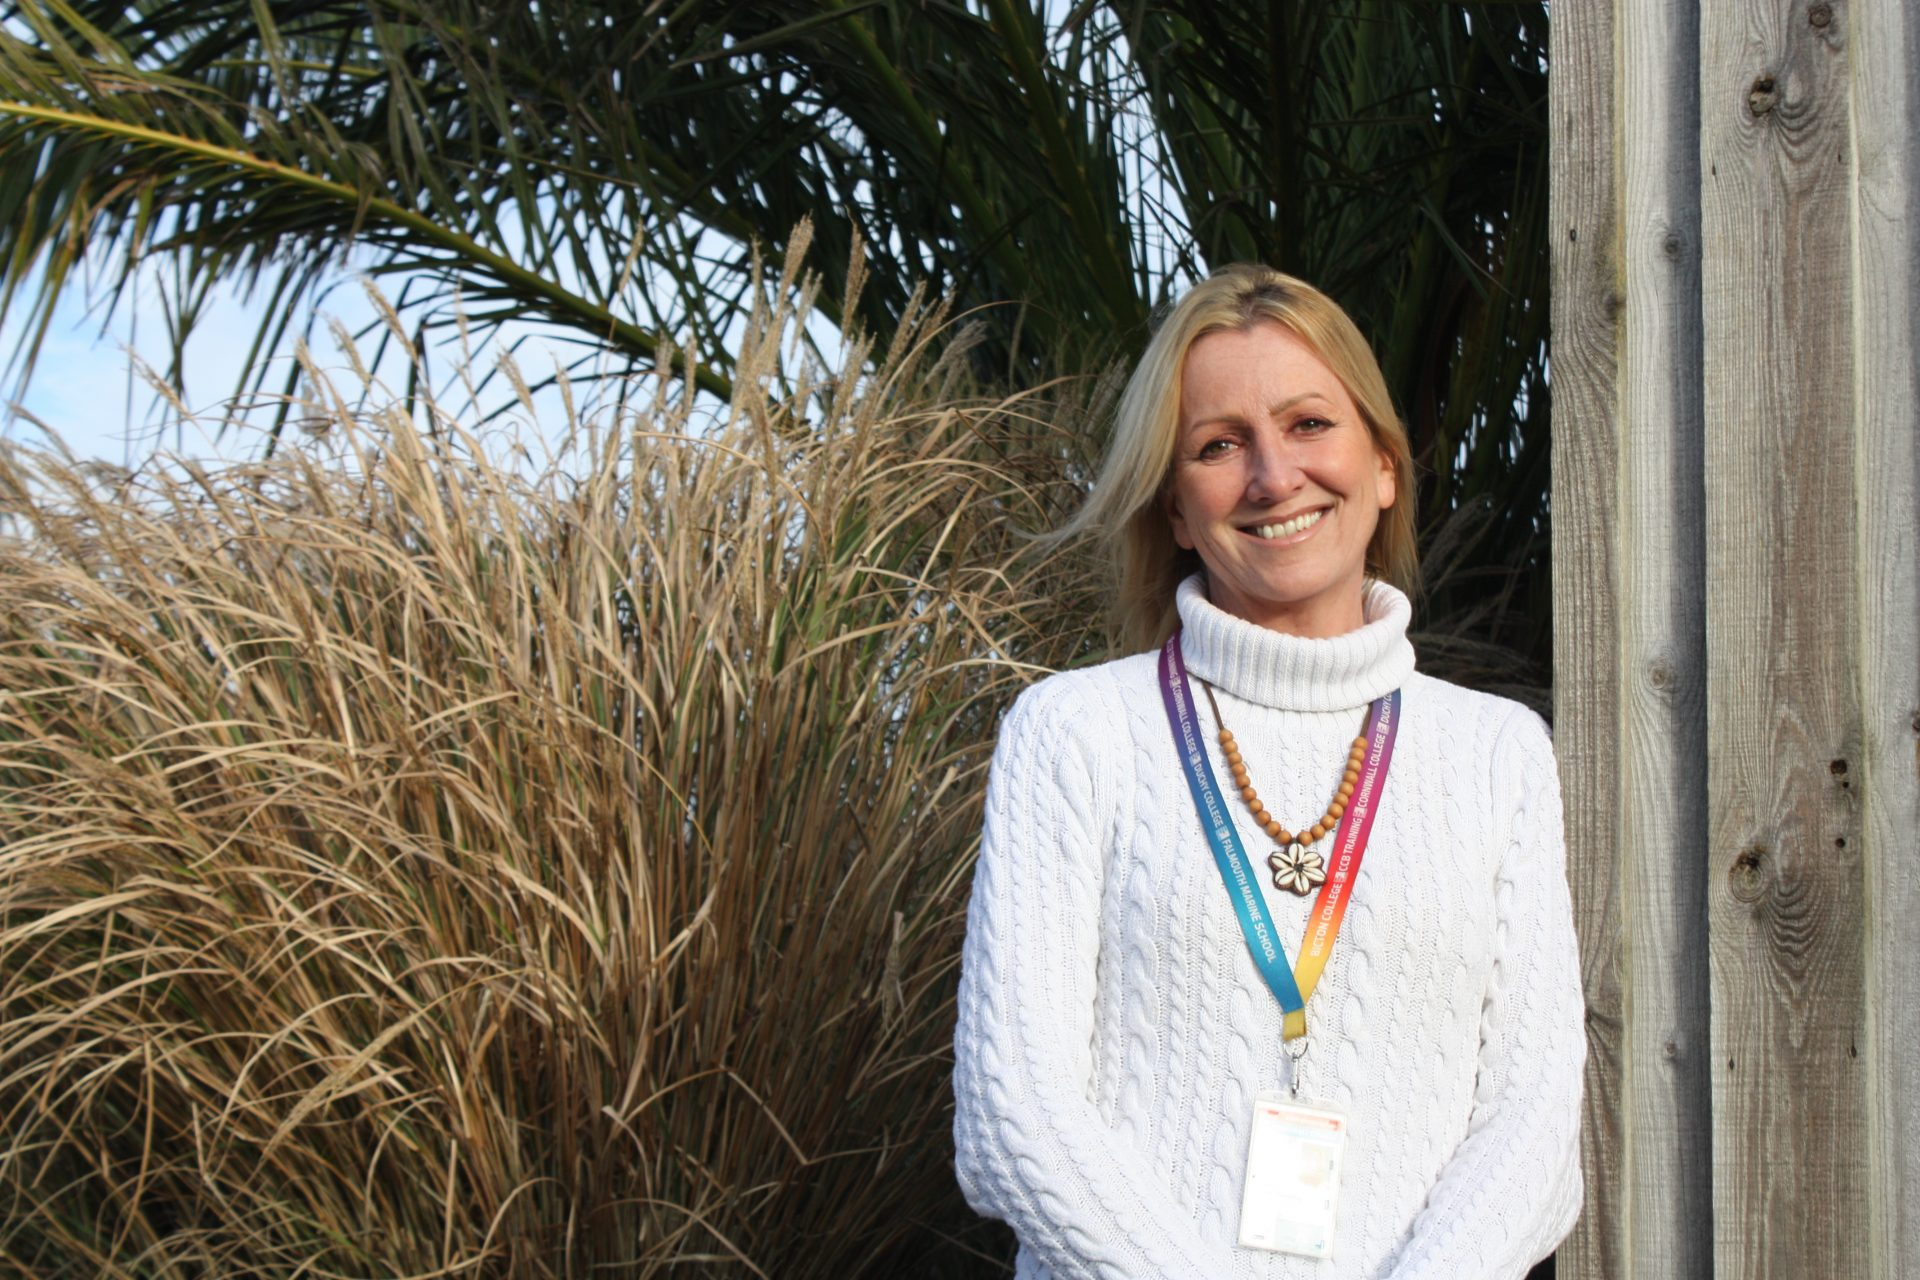 Cornwall's compassion swells as record numbers train to be counsellors